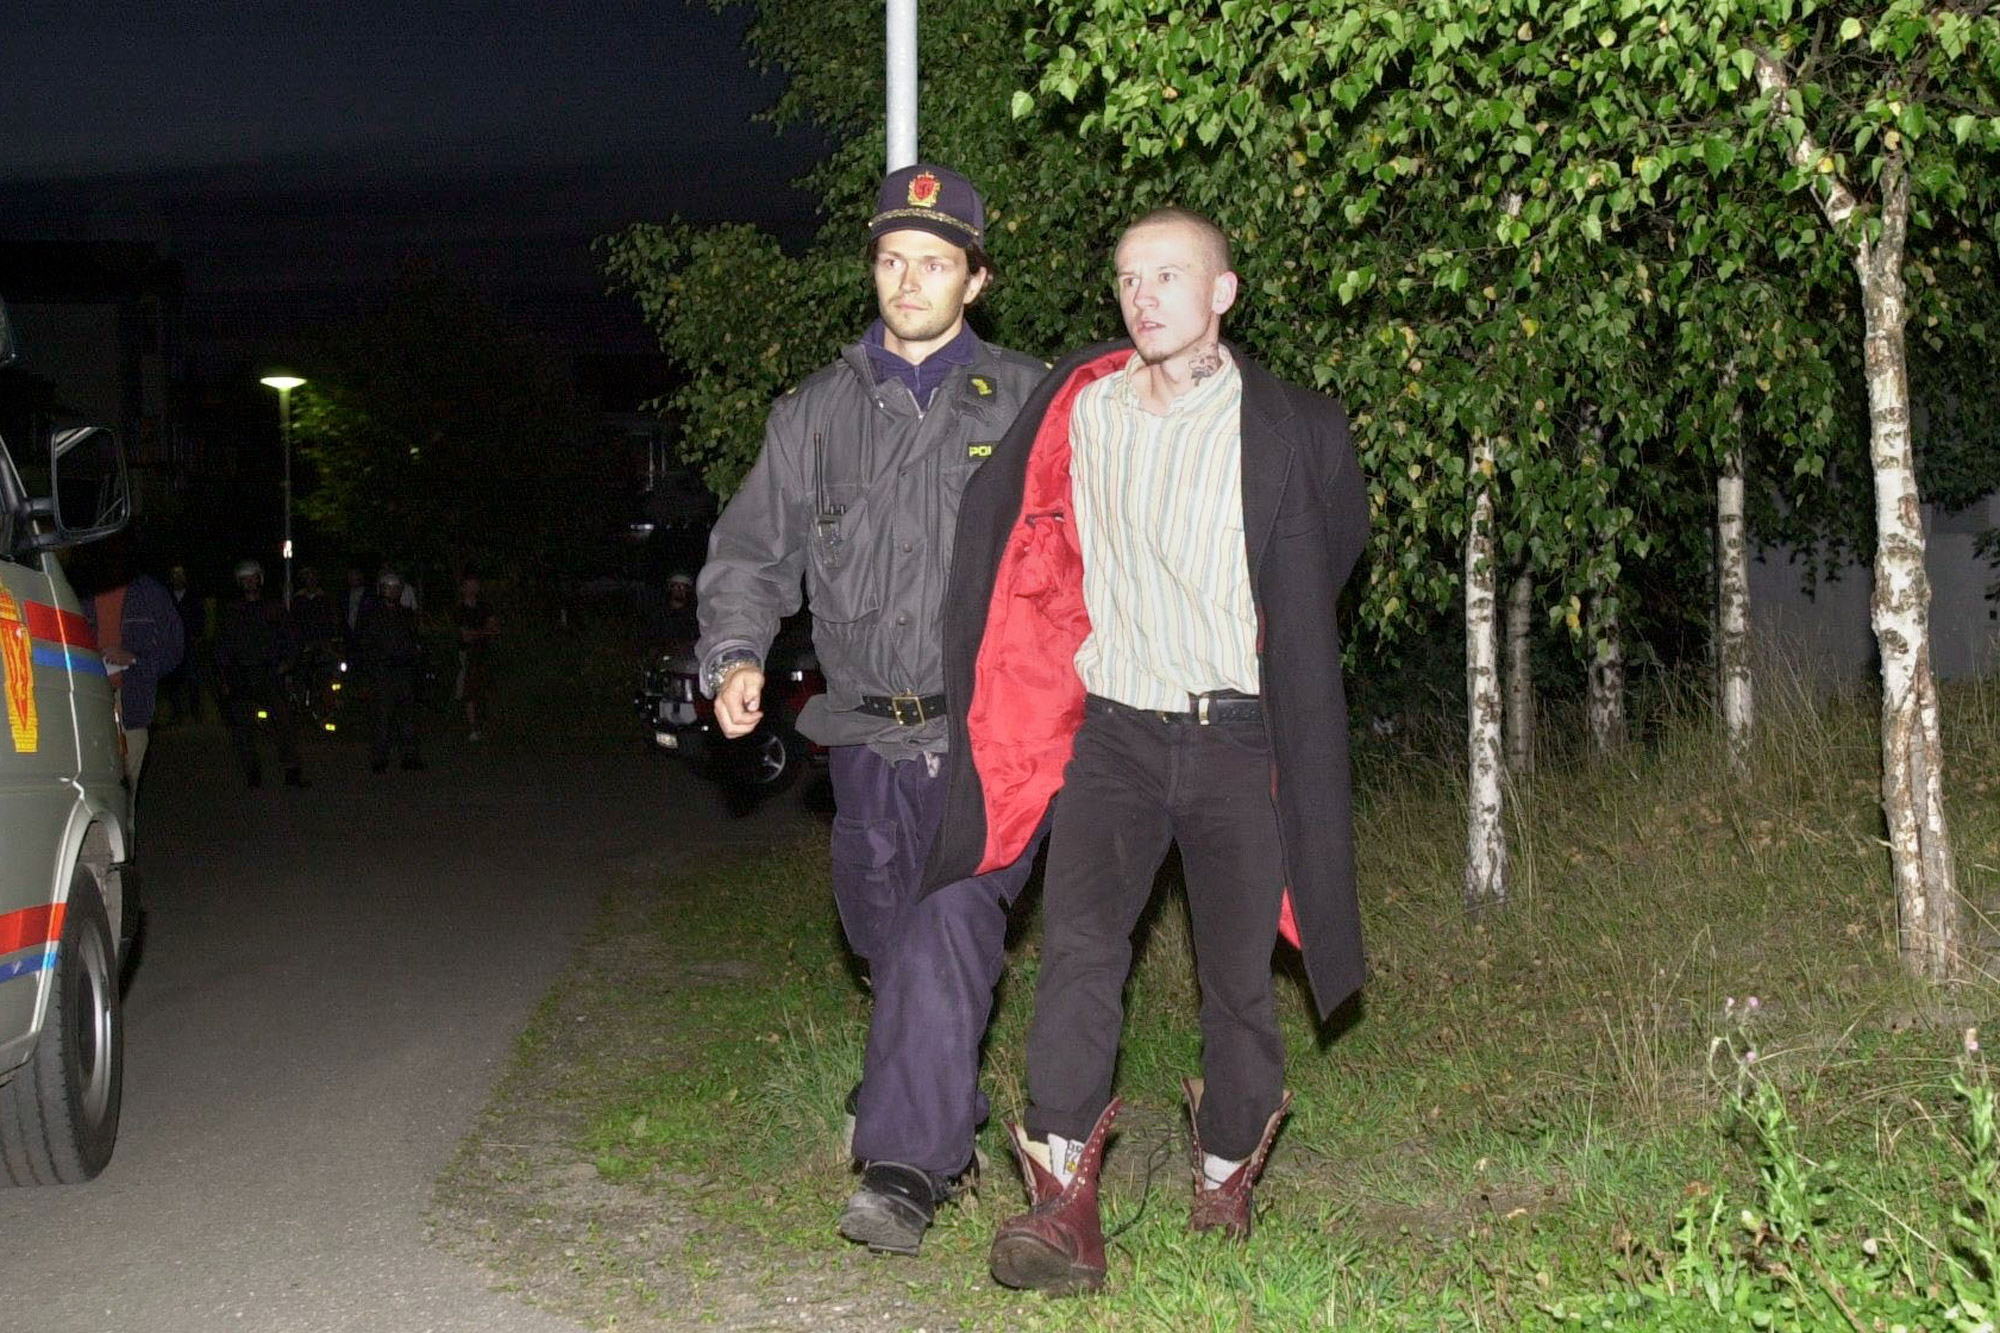 1 May 1996: From left, a police officer detains Petter Gundersen, one of the five neo-Nazis who were charged with the murder of 15-year-old Benjamin Hermansen in January 2001. (Photograph by Alexander Nordahl/ All Over Press Norway/ Liaison)